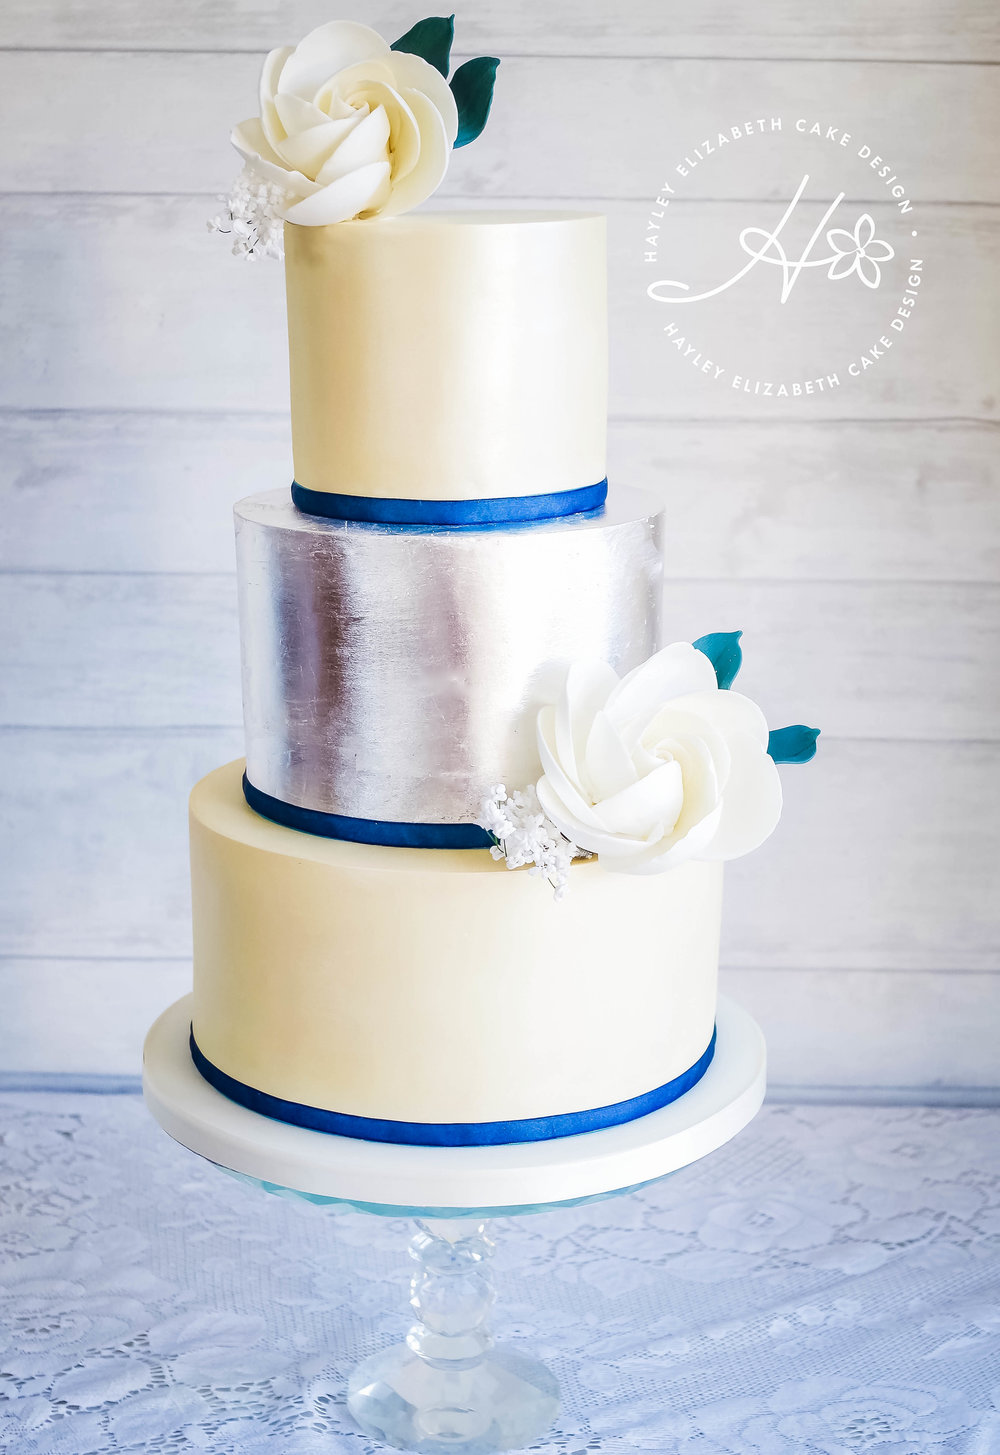 ivory-shimmer-and-edible-leaf-wedding-cake.jpg